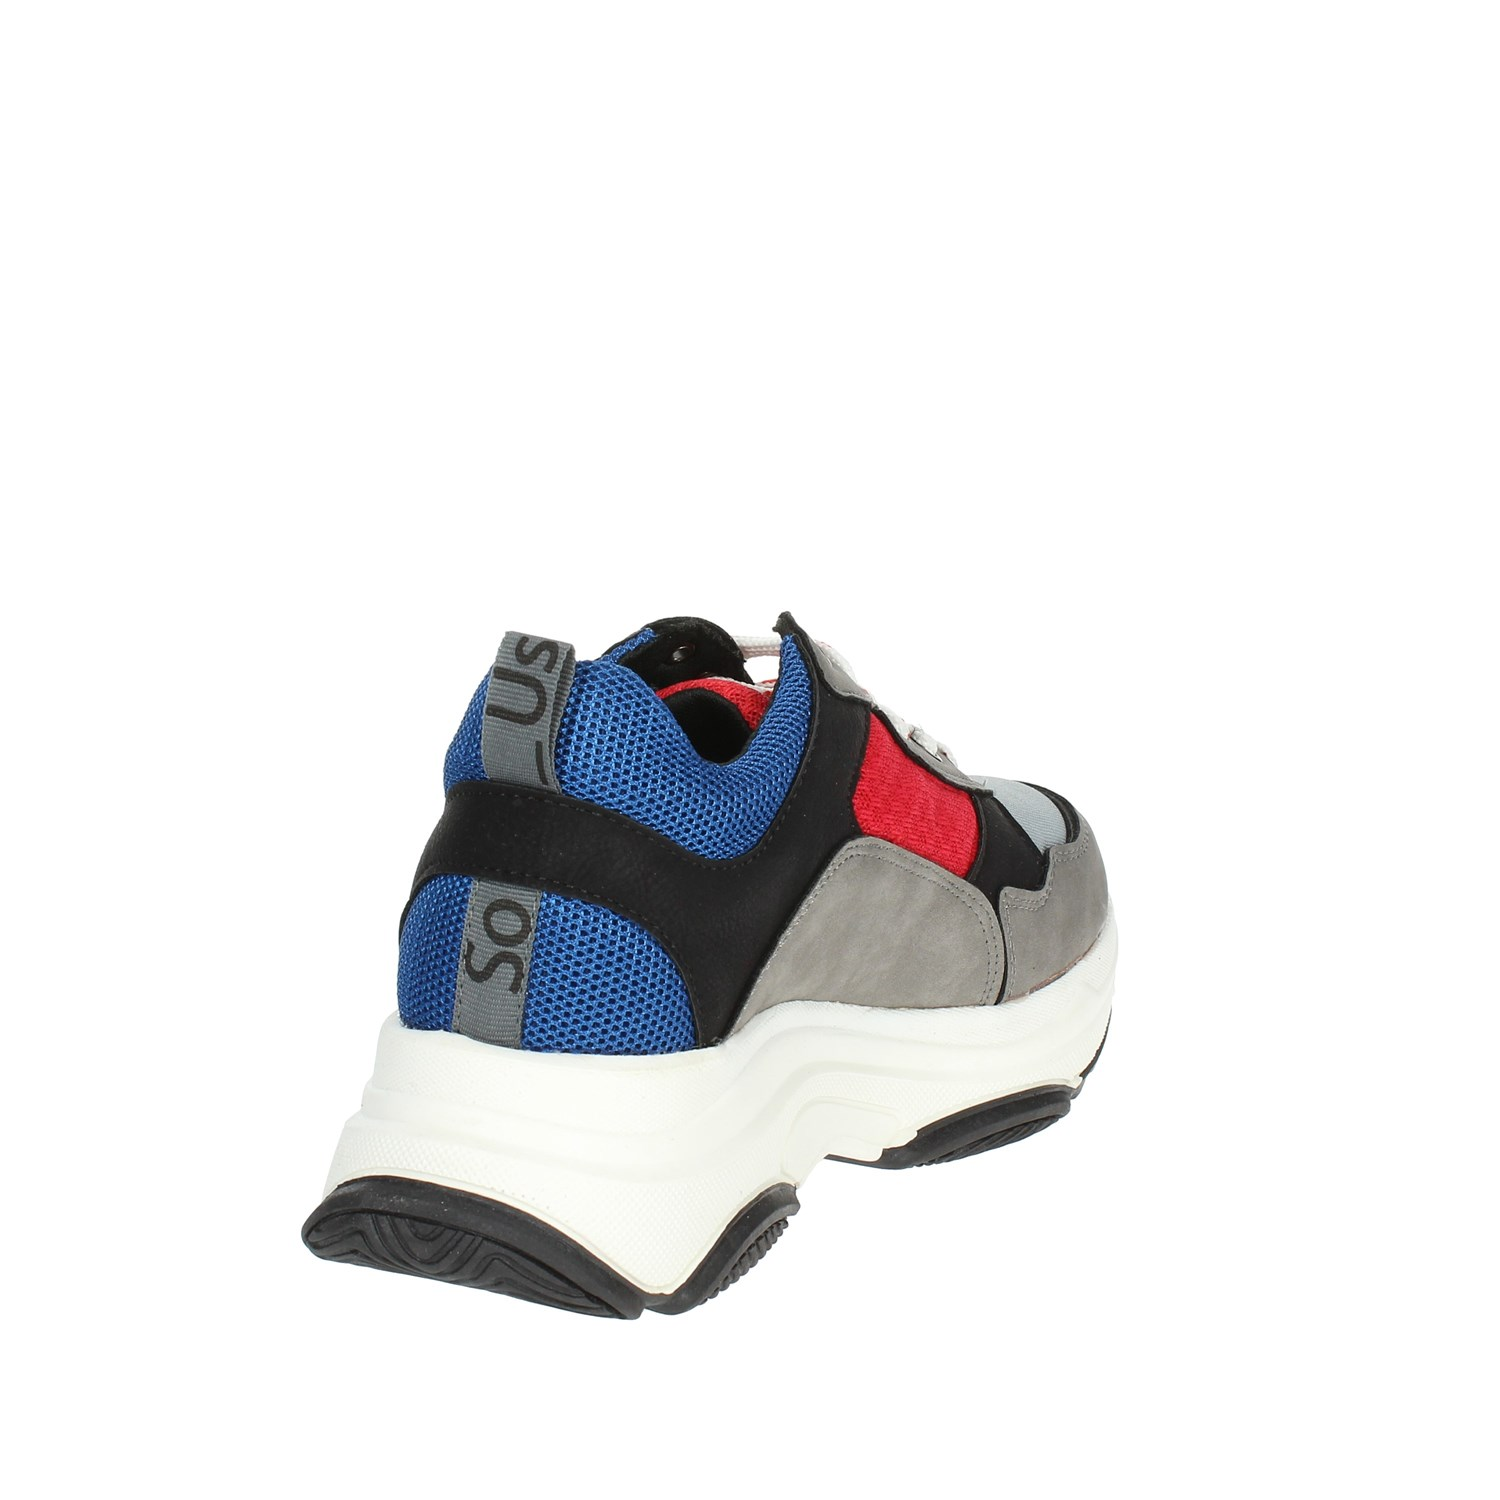 Sneakers inverno us R So 520 Donna Autunno tP16qR